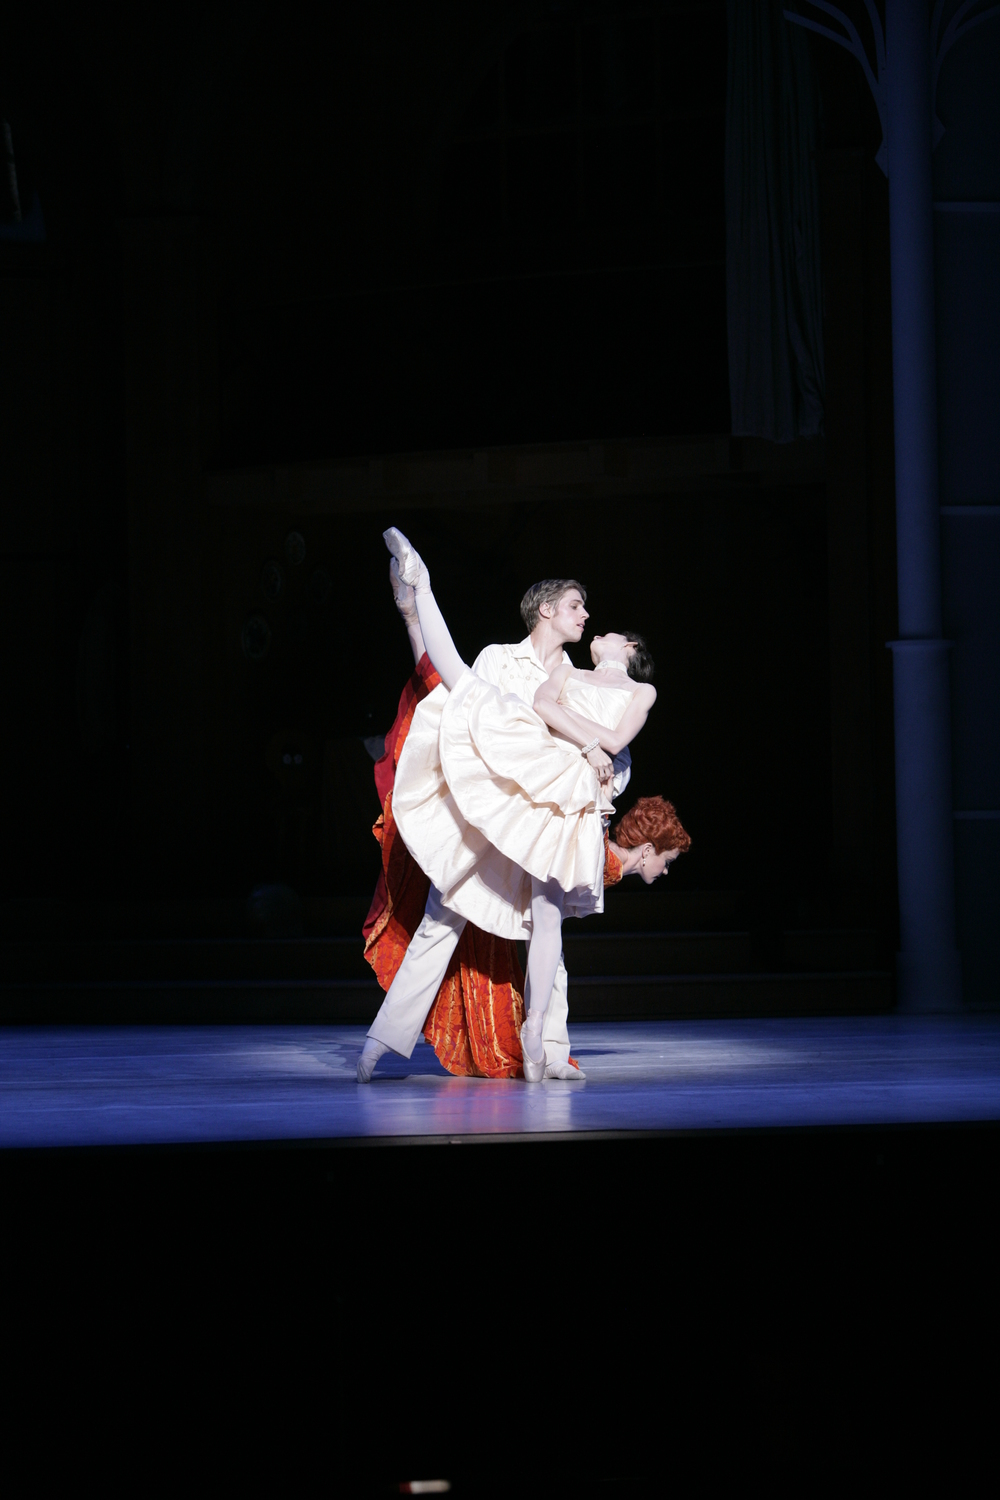 Juliet Burnett as Sophie with Ty King-Wall as Octavian and Lucinda Dunn as Marschallin in Graeme Murphy's The Silver Rose